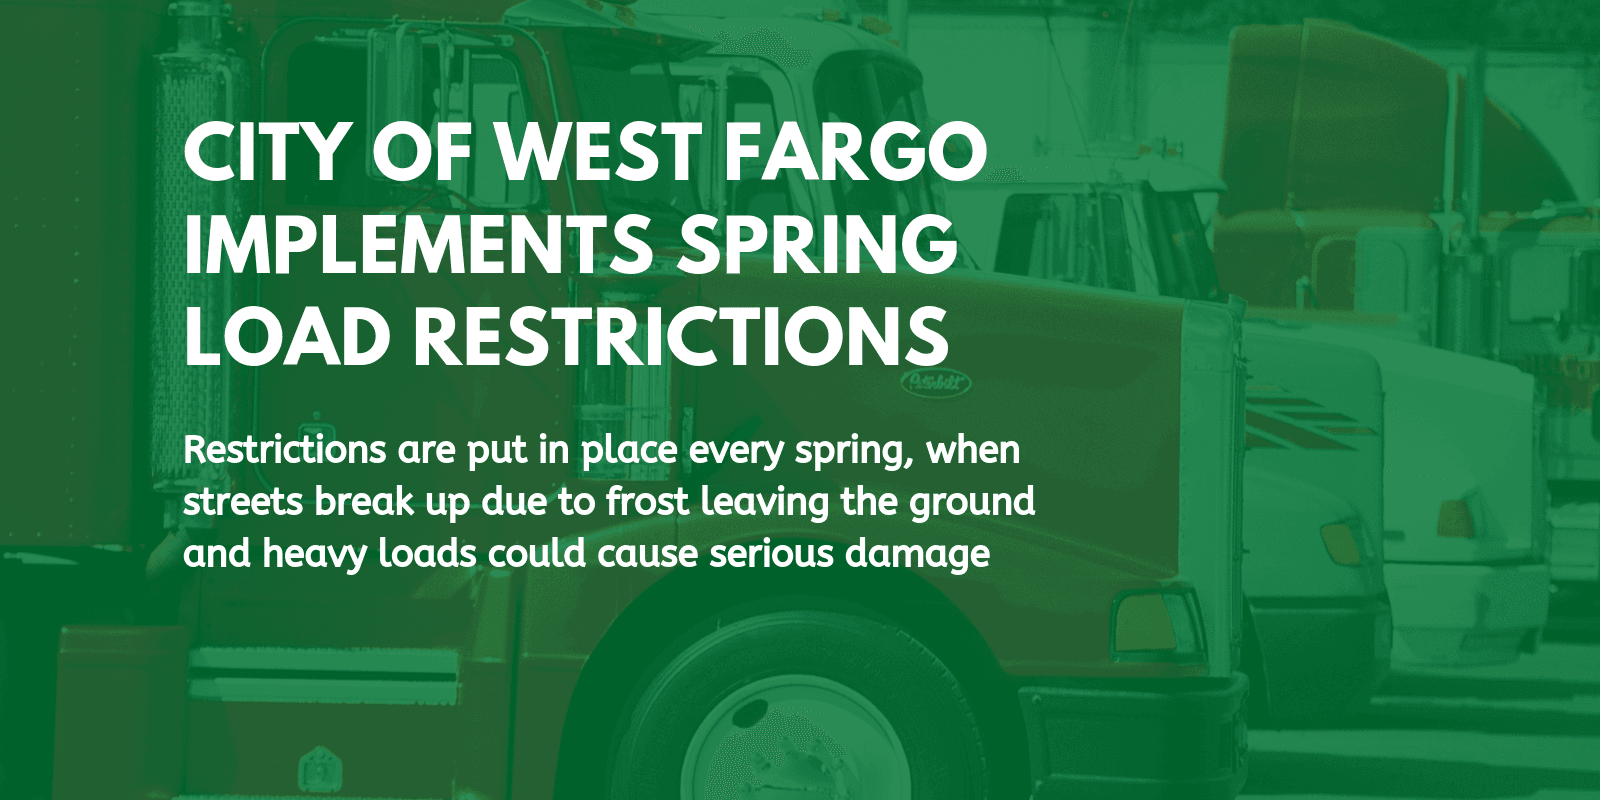 City of West Fargo spring load restrictions